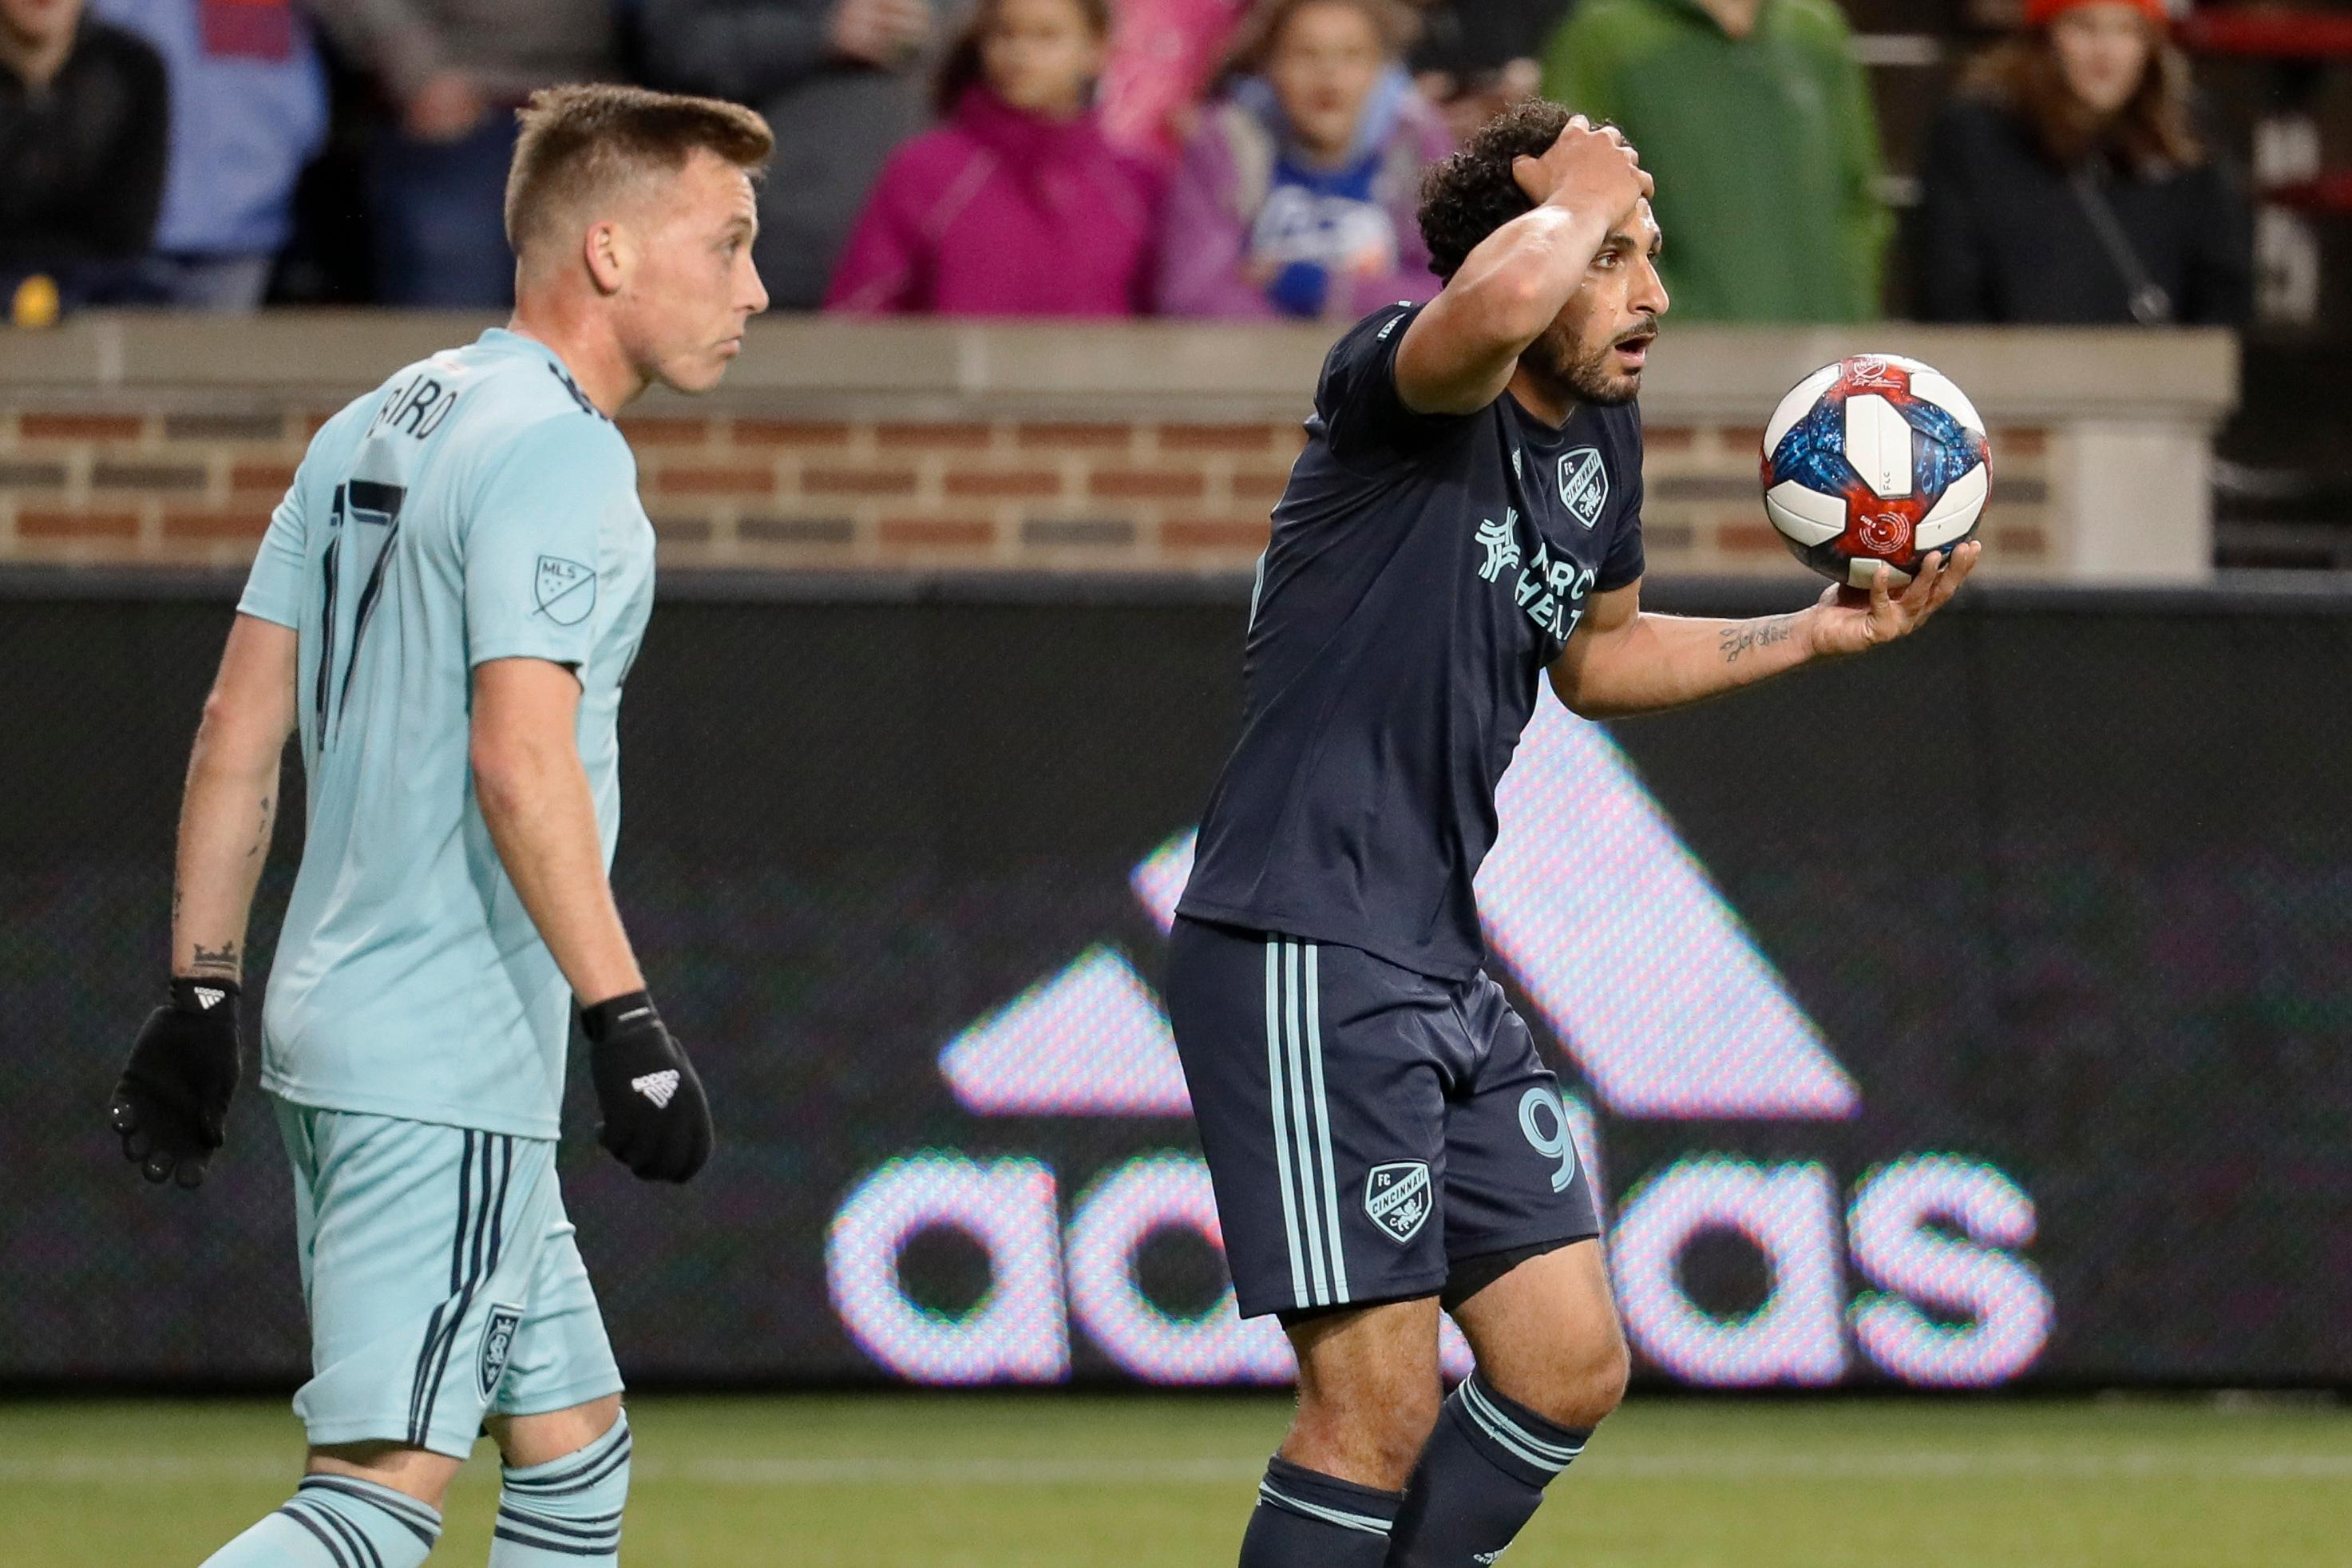 FC Cincinnati midfielder Kenny Saief, right, reacts alongside Real Salt Lake forward Corey Baird (17) during the first half of an MLS soccer match Friday, April 19, 2019, in Cincinnati. (AP Photo/John Minchillo)